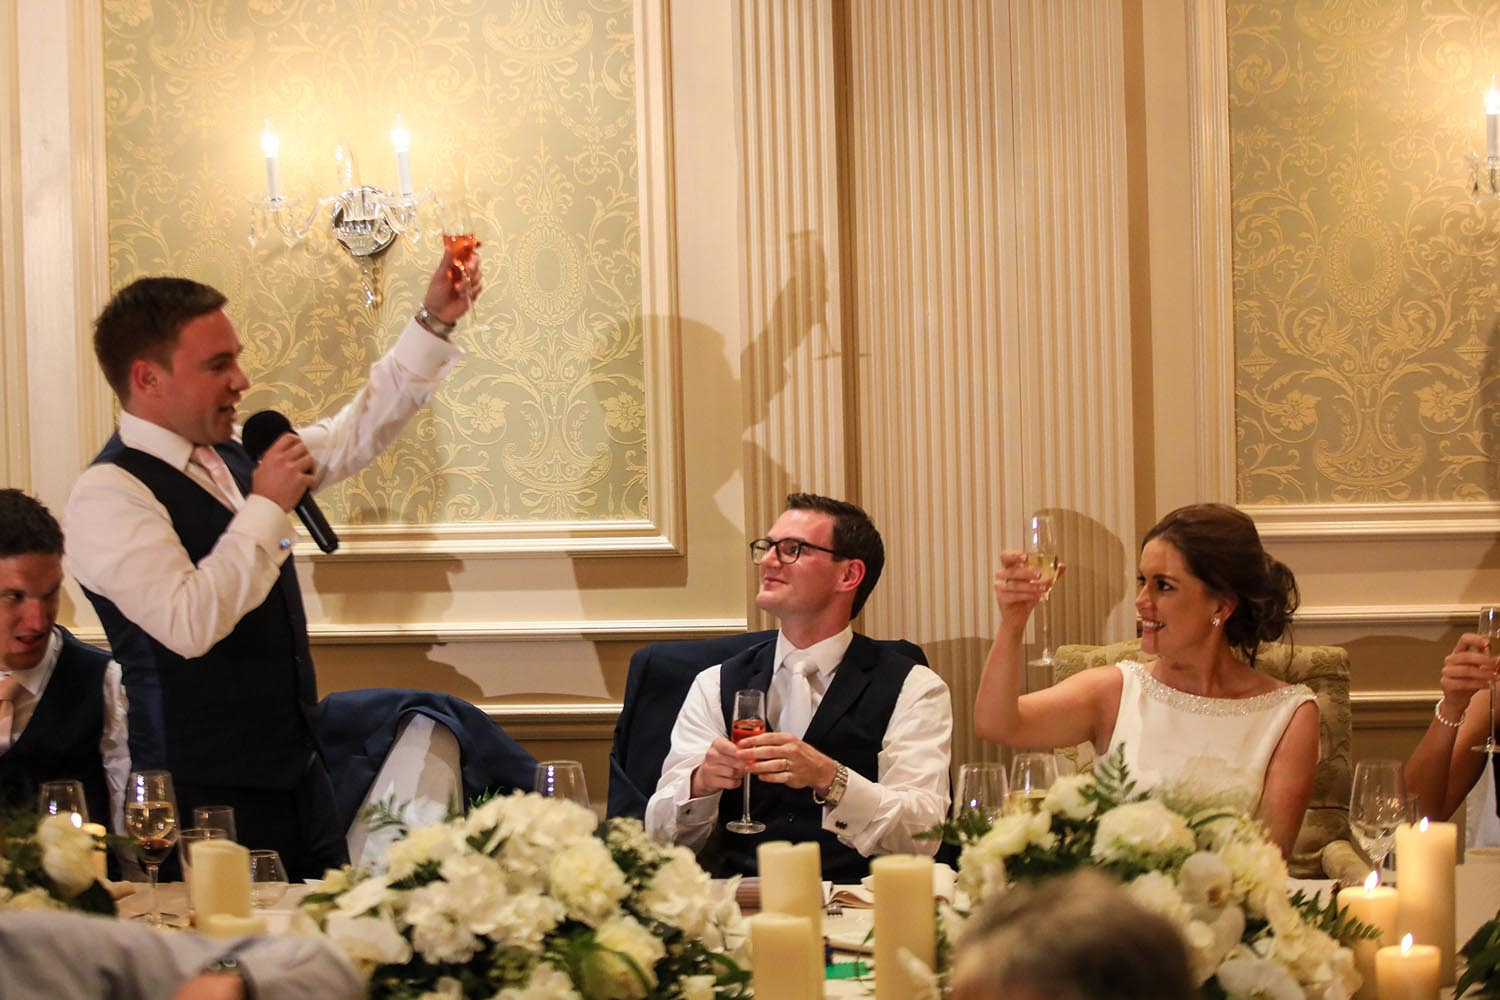 Raising a toast to a married couple on their wedding day